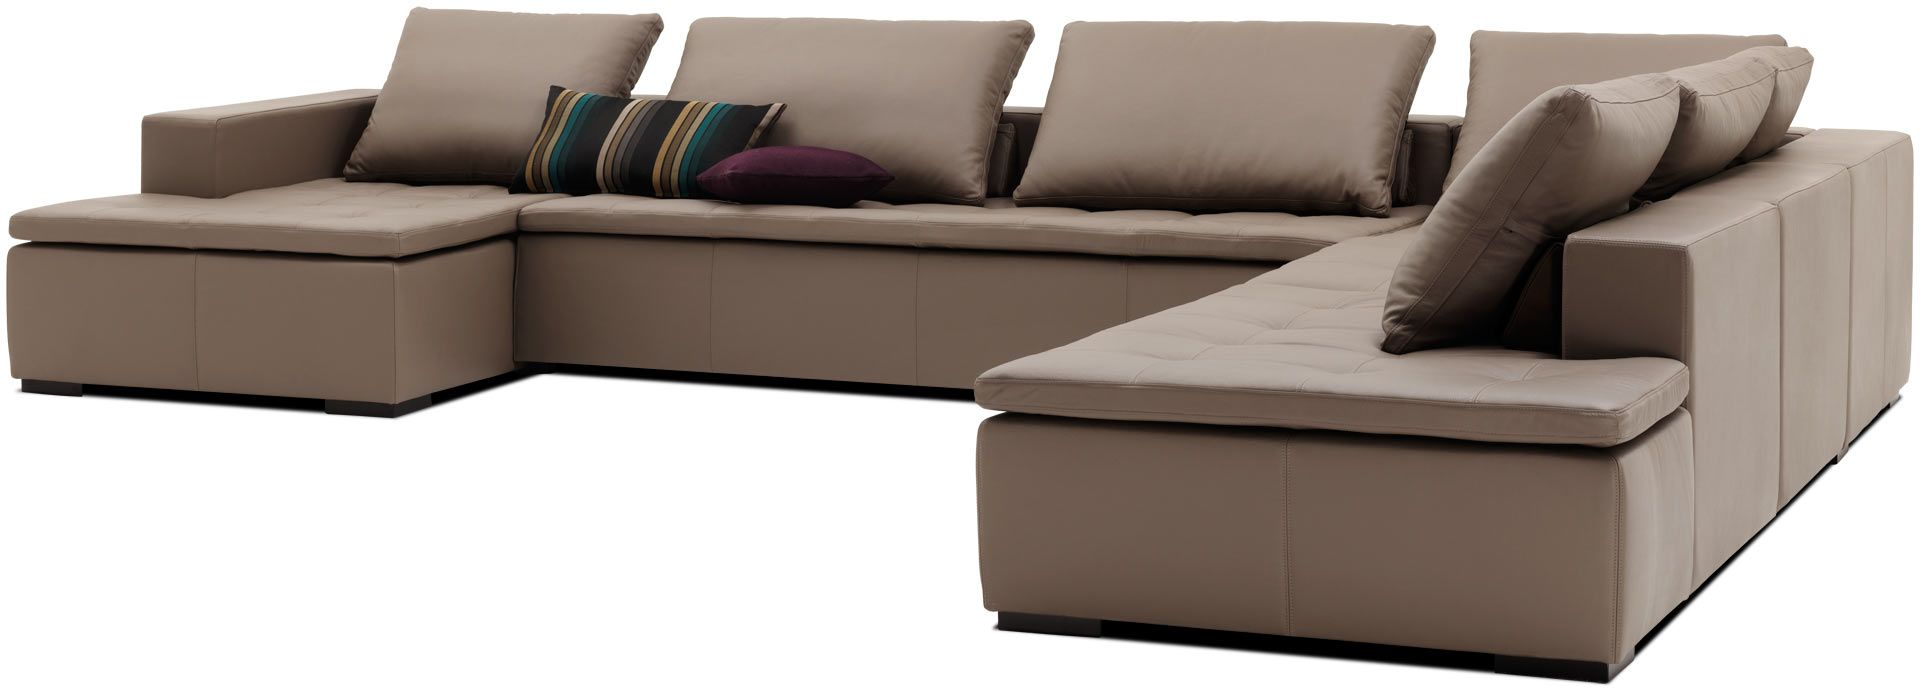 mezzo sofa as seen in the call - designed for time-outs